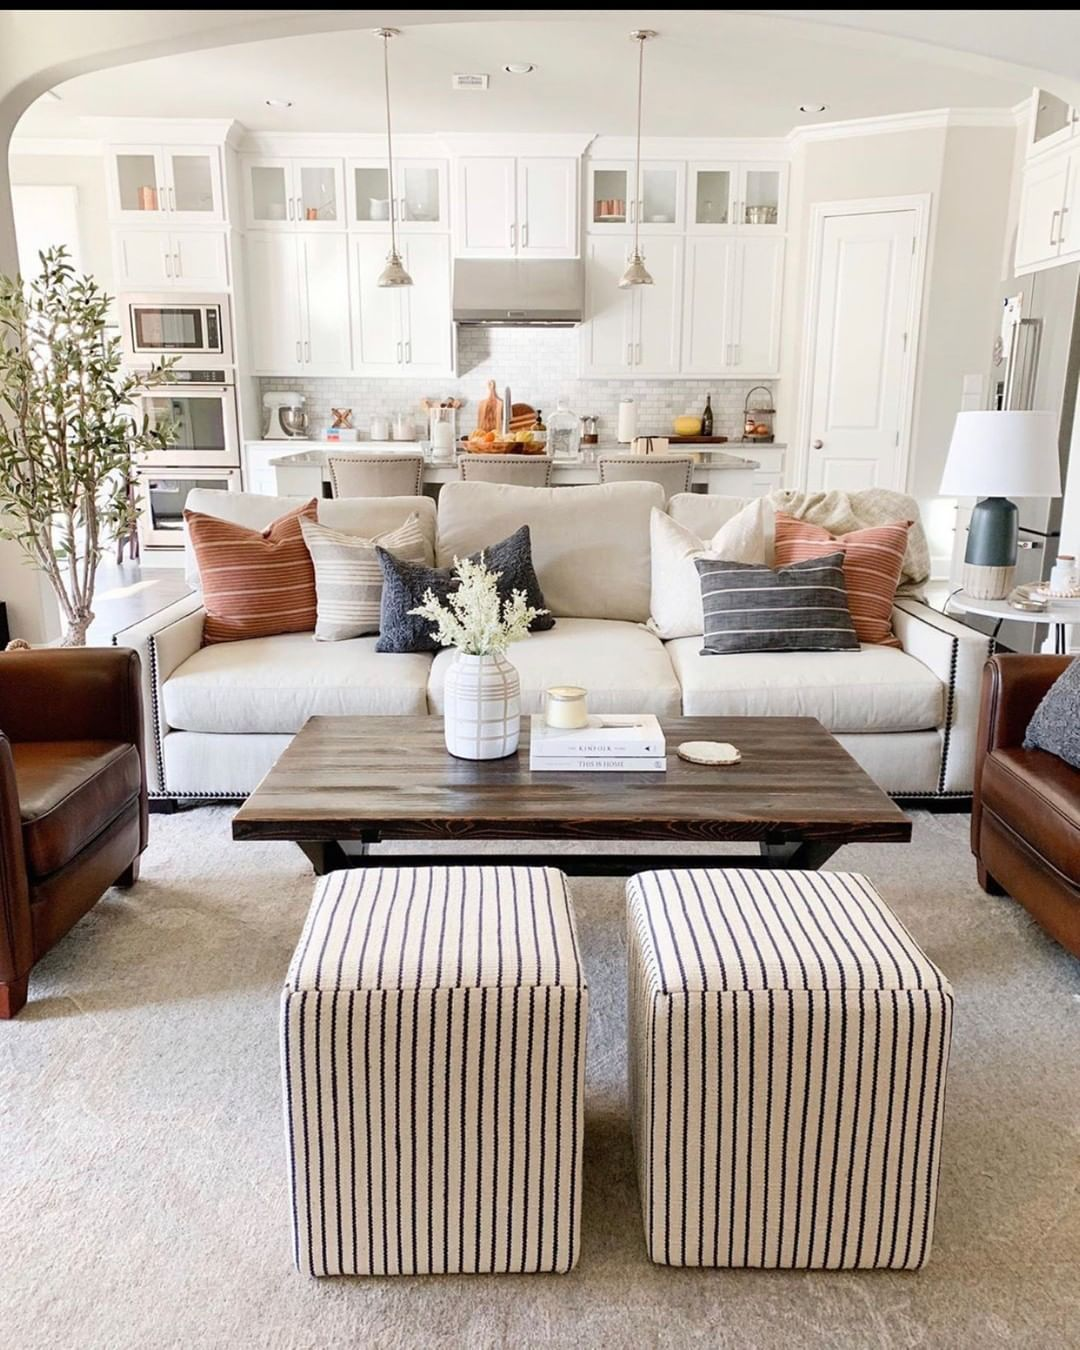 Greige Design Shop Interiors On Instagram We Love All Of Your Beautiful Posts On The Greigestyle Feed Thank You To House Interior Home Living Room Home Greige living room ideas